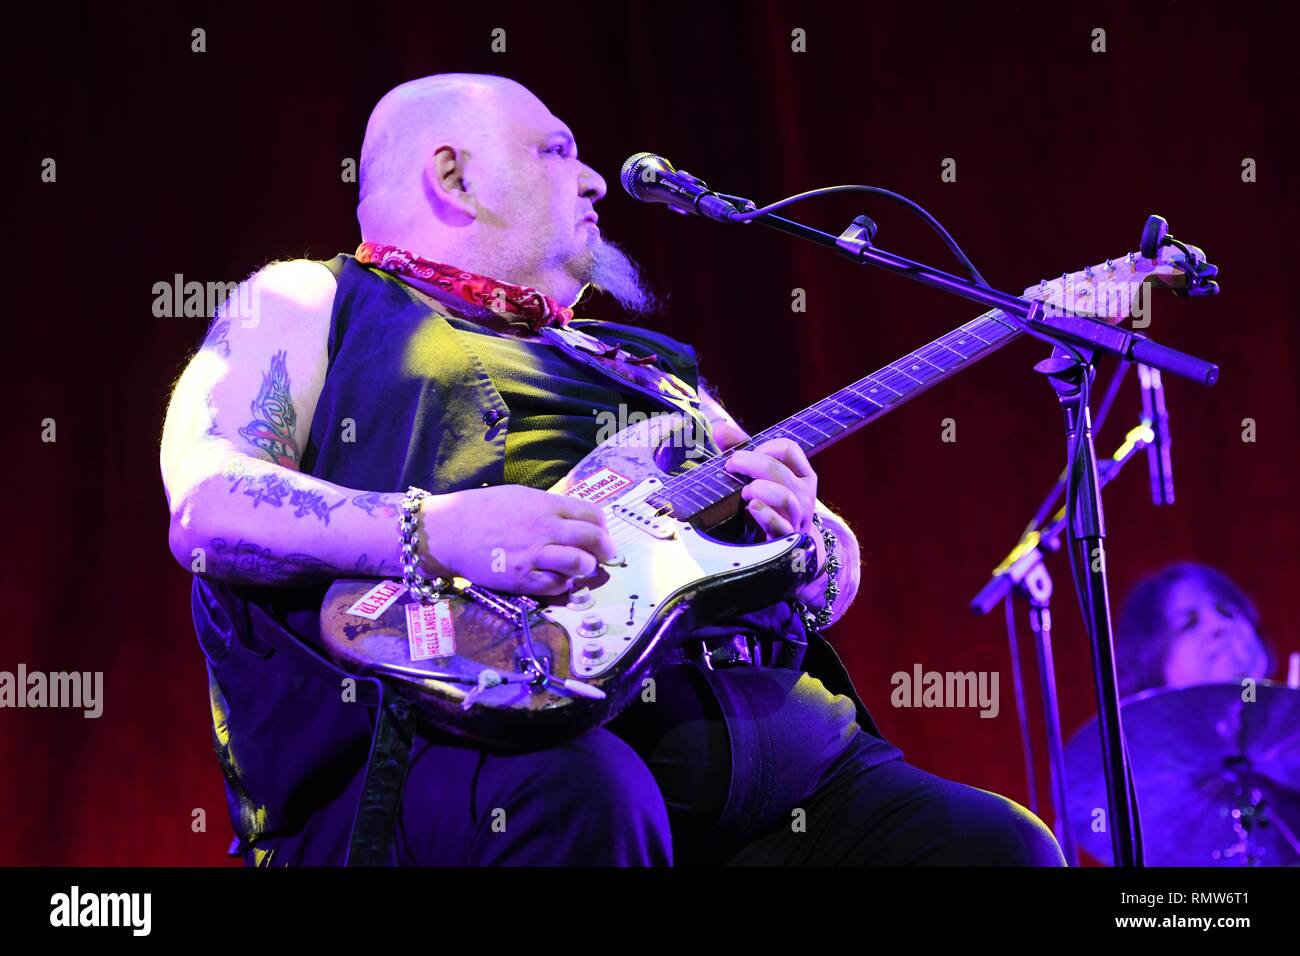 Singer, songwriter and blues guitarist Popa Chubby is shown at the completion of his 'live' concert appearance. - Stock Image